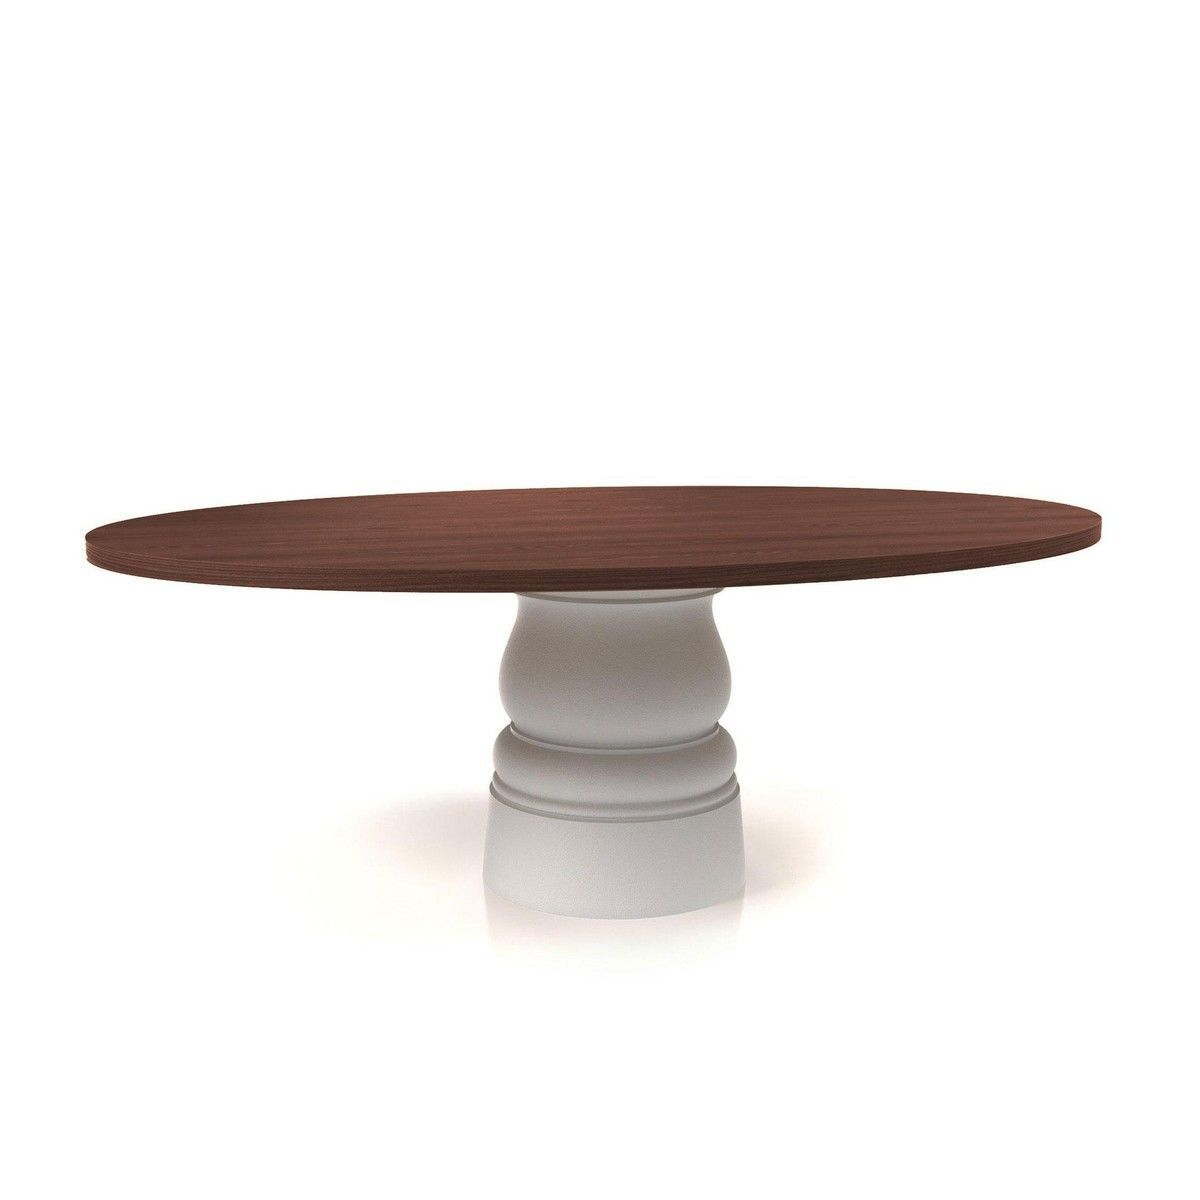 Moooi container wood table 120cm moooi - Table 120 cm ...